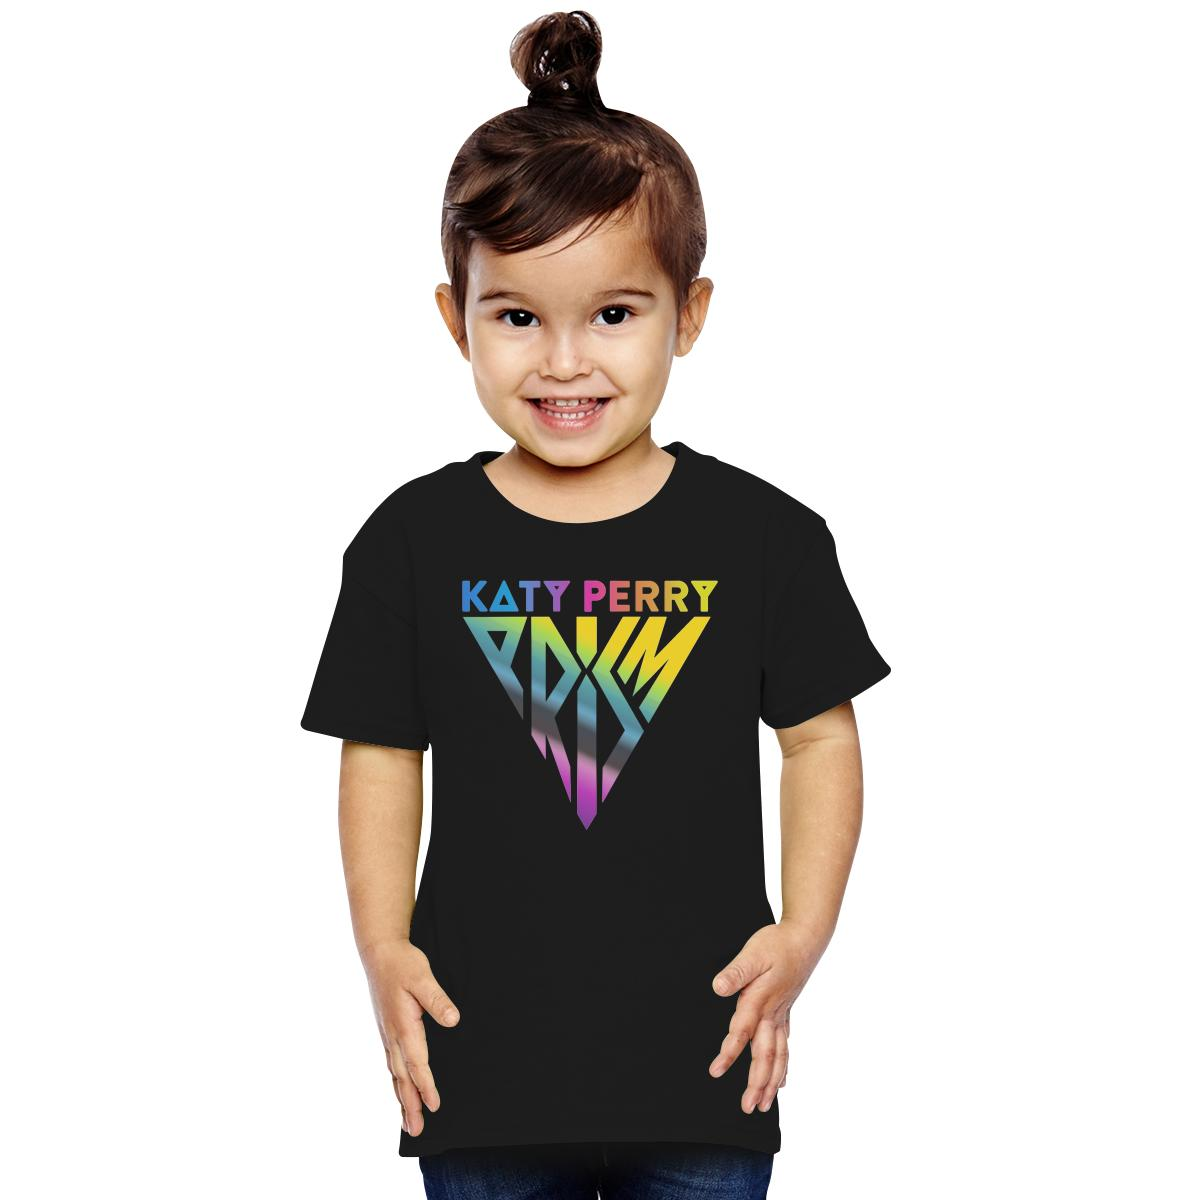 Katy Perry Toddler T-shirt | Customon.com